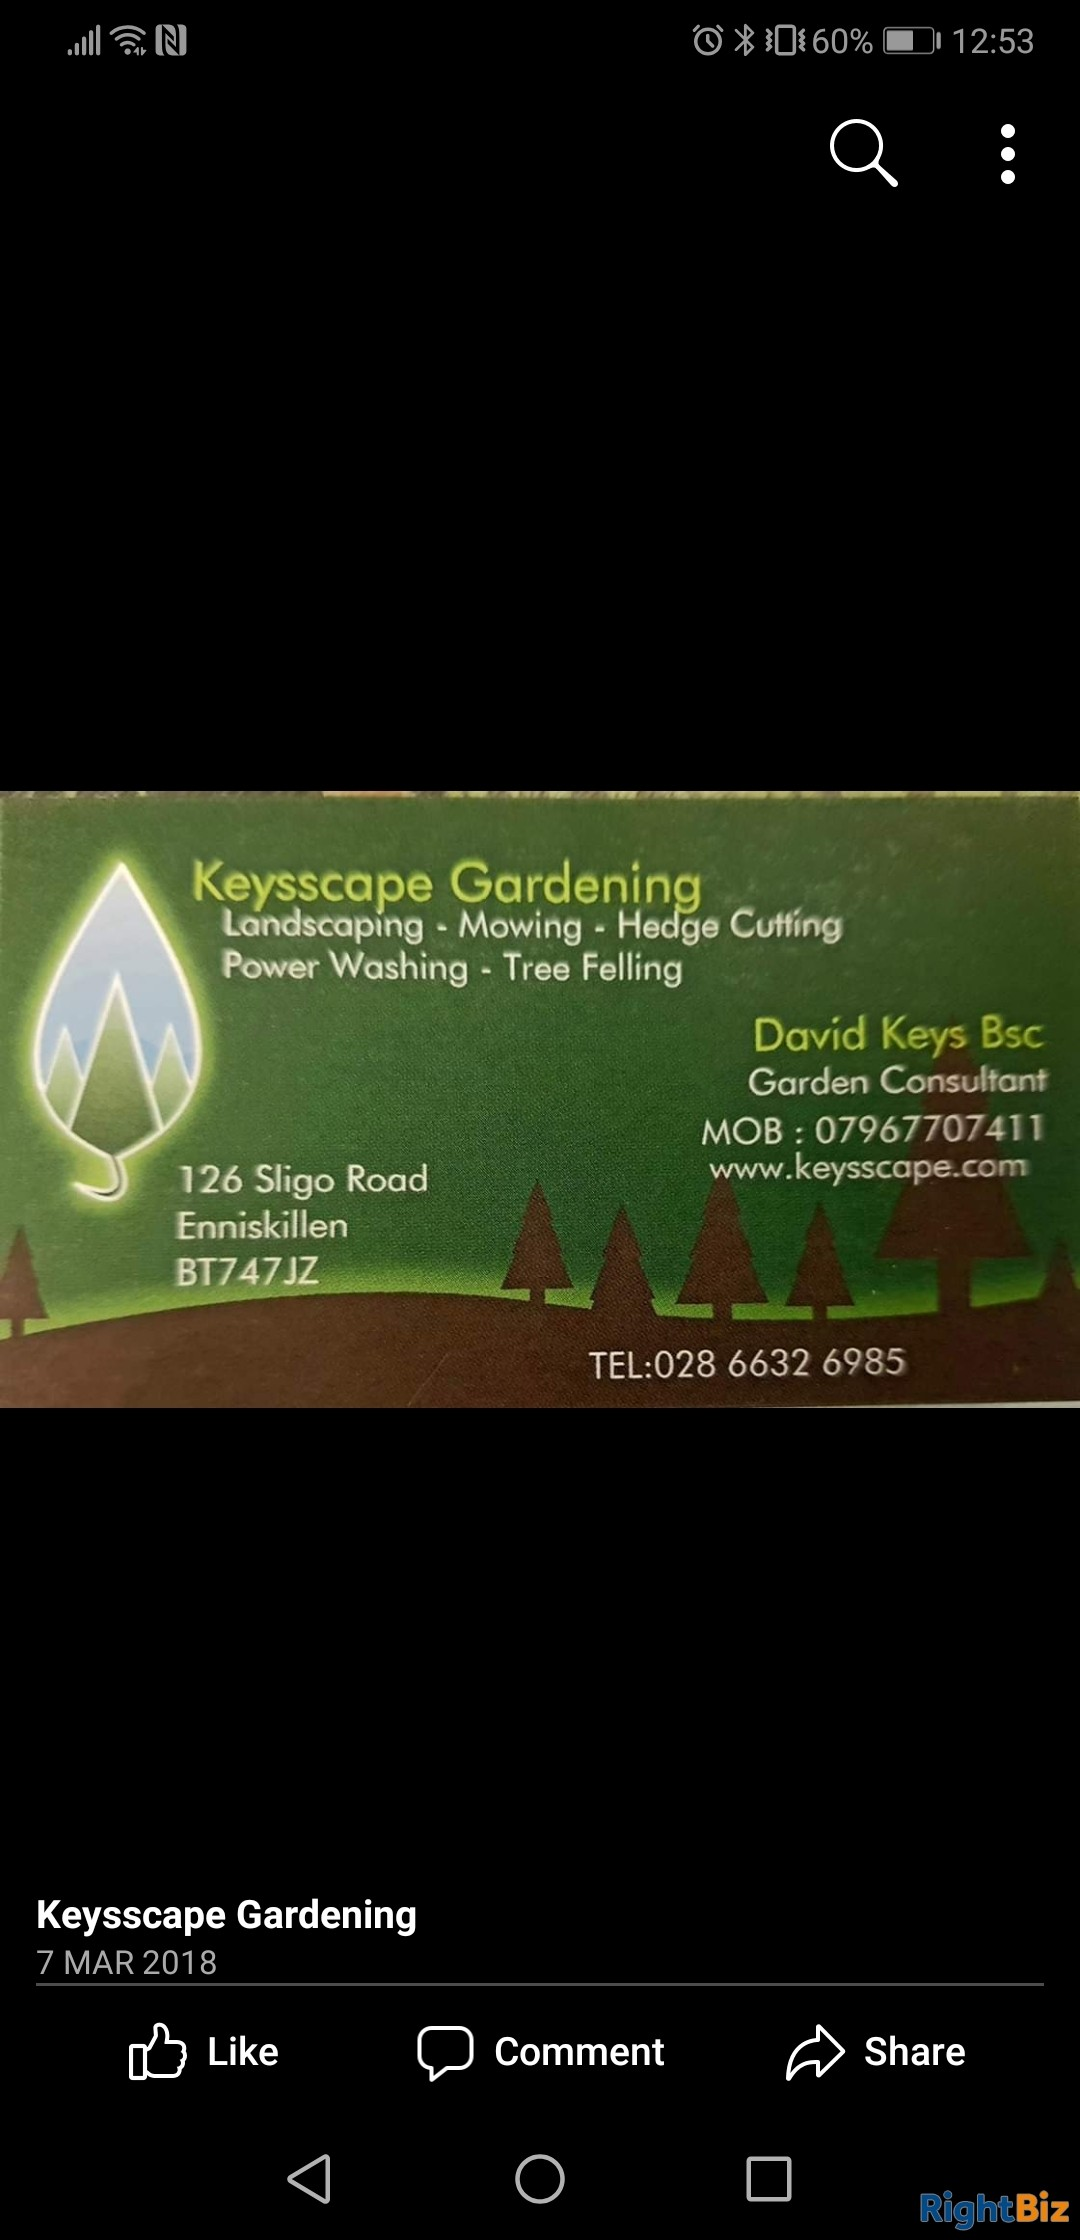 Small landscaping business with lots of potential - Image 1